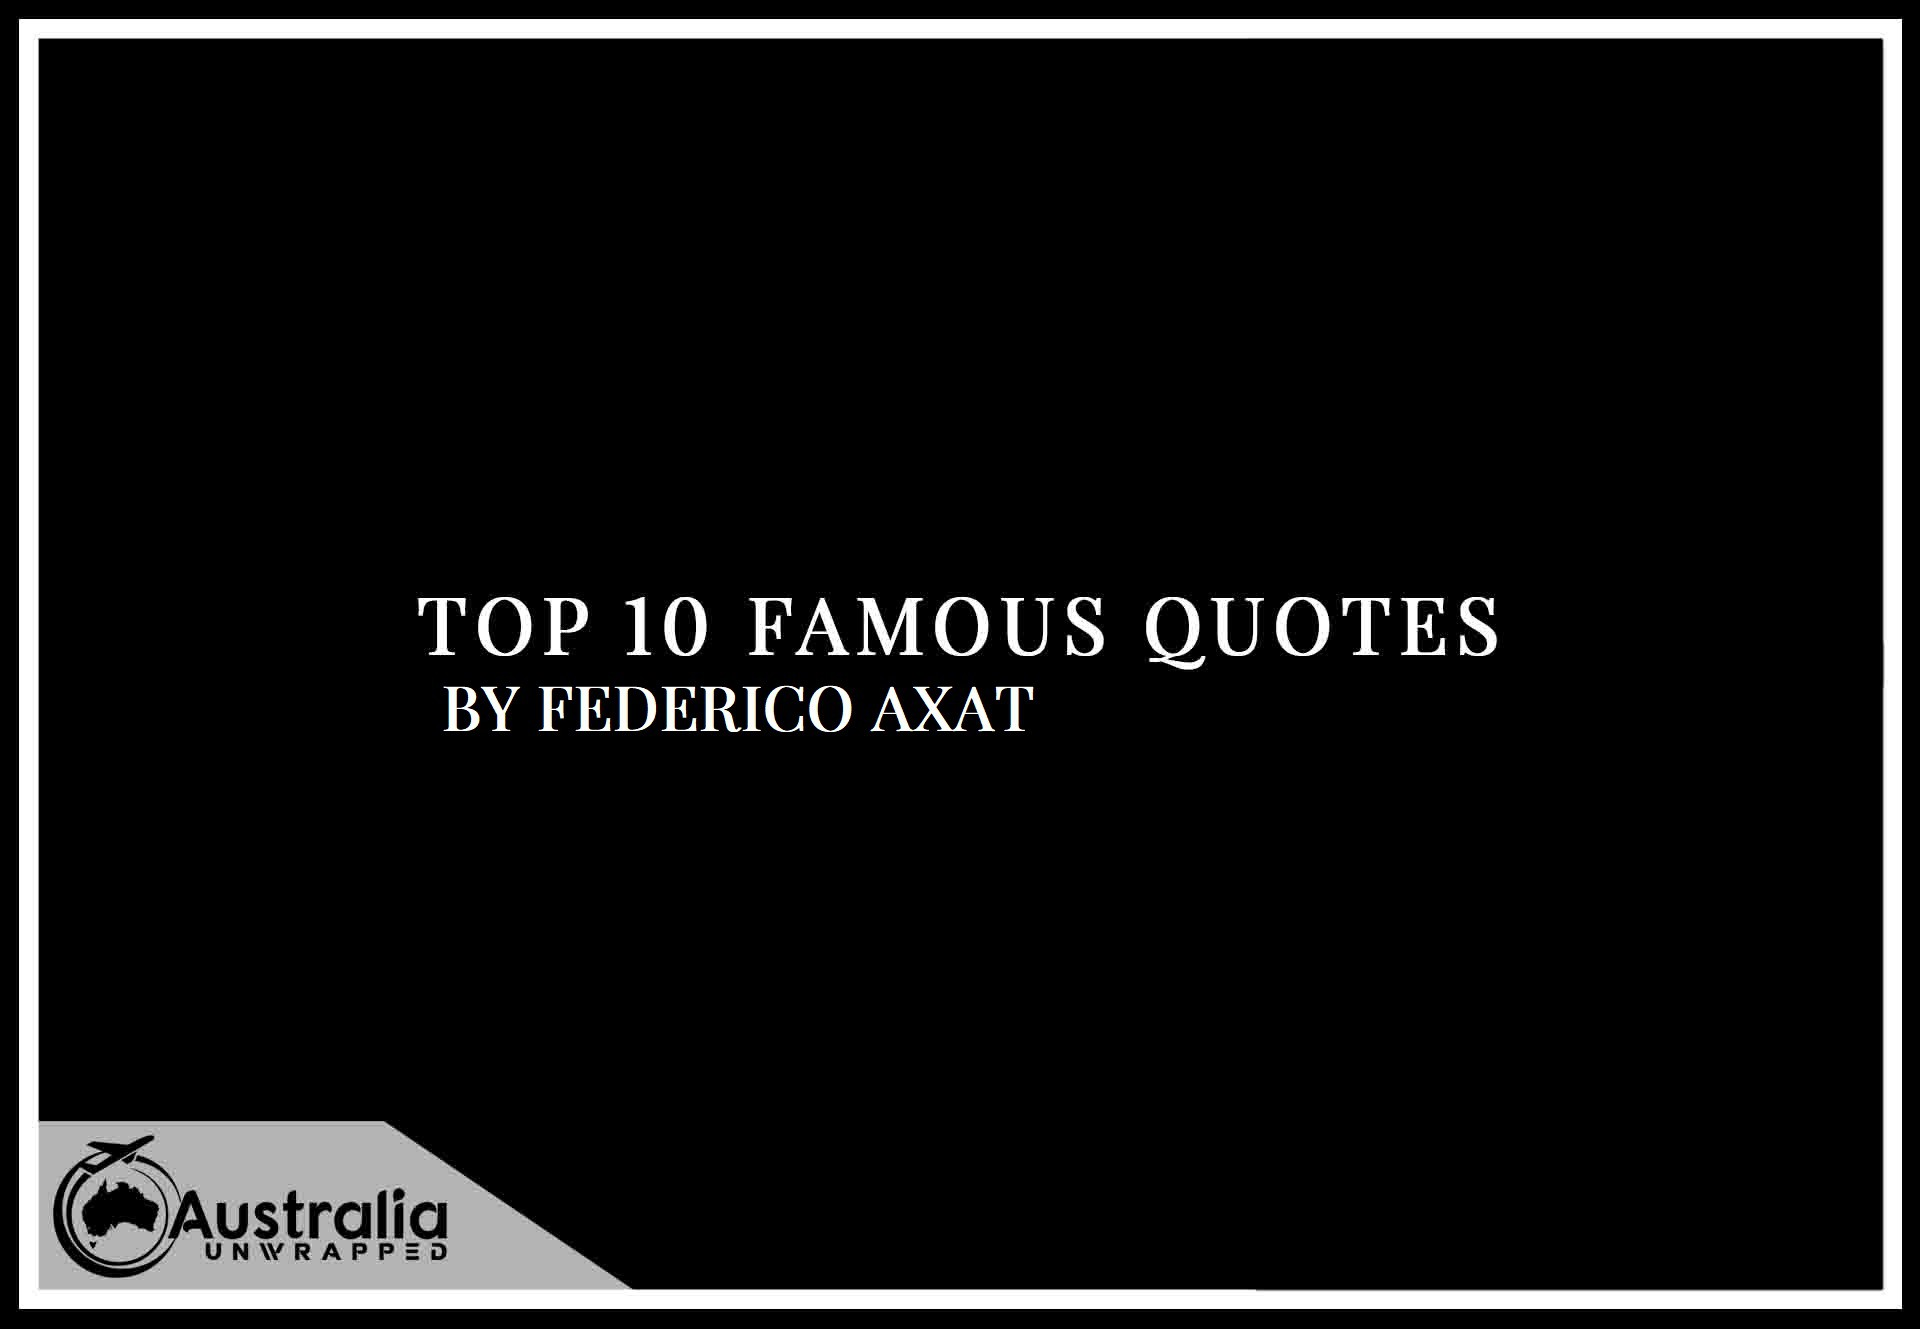 Top 10 Famous Quotes by Author Federico Axat